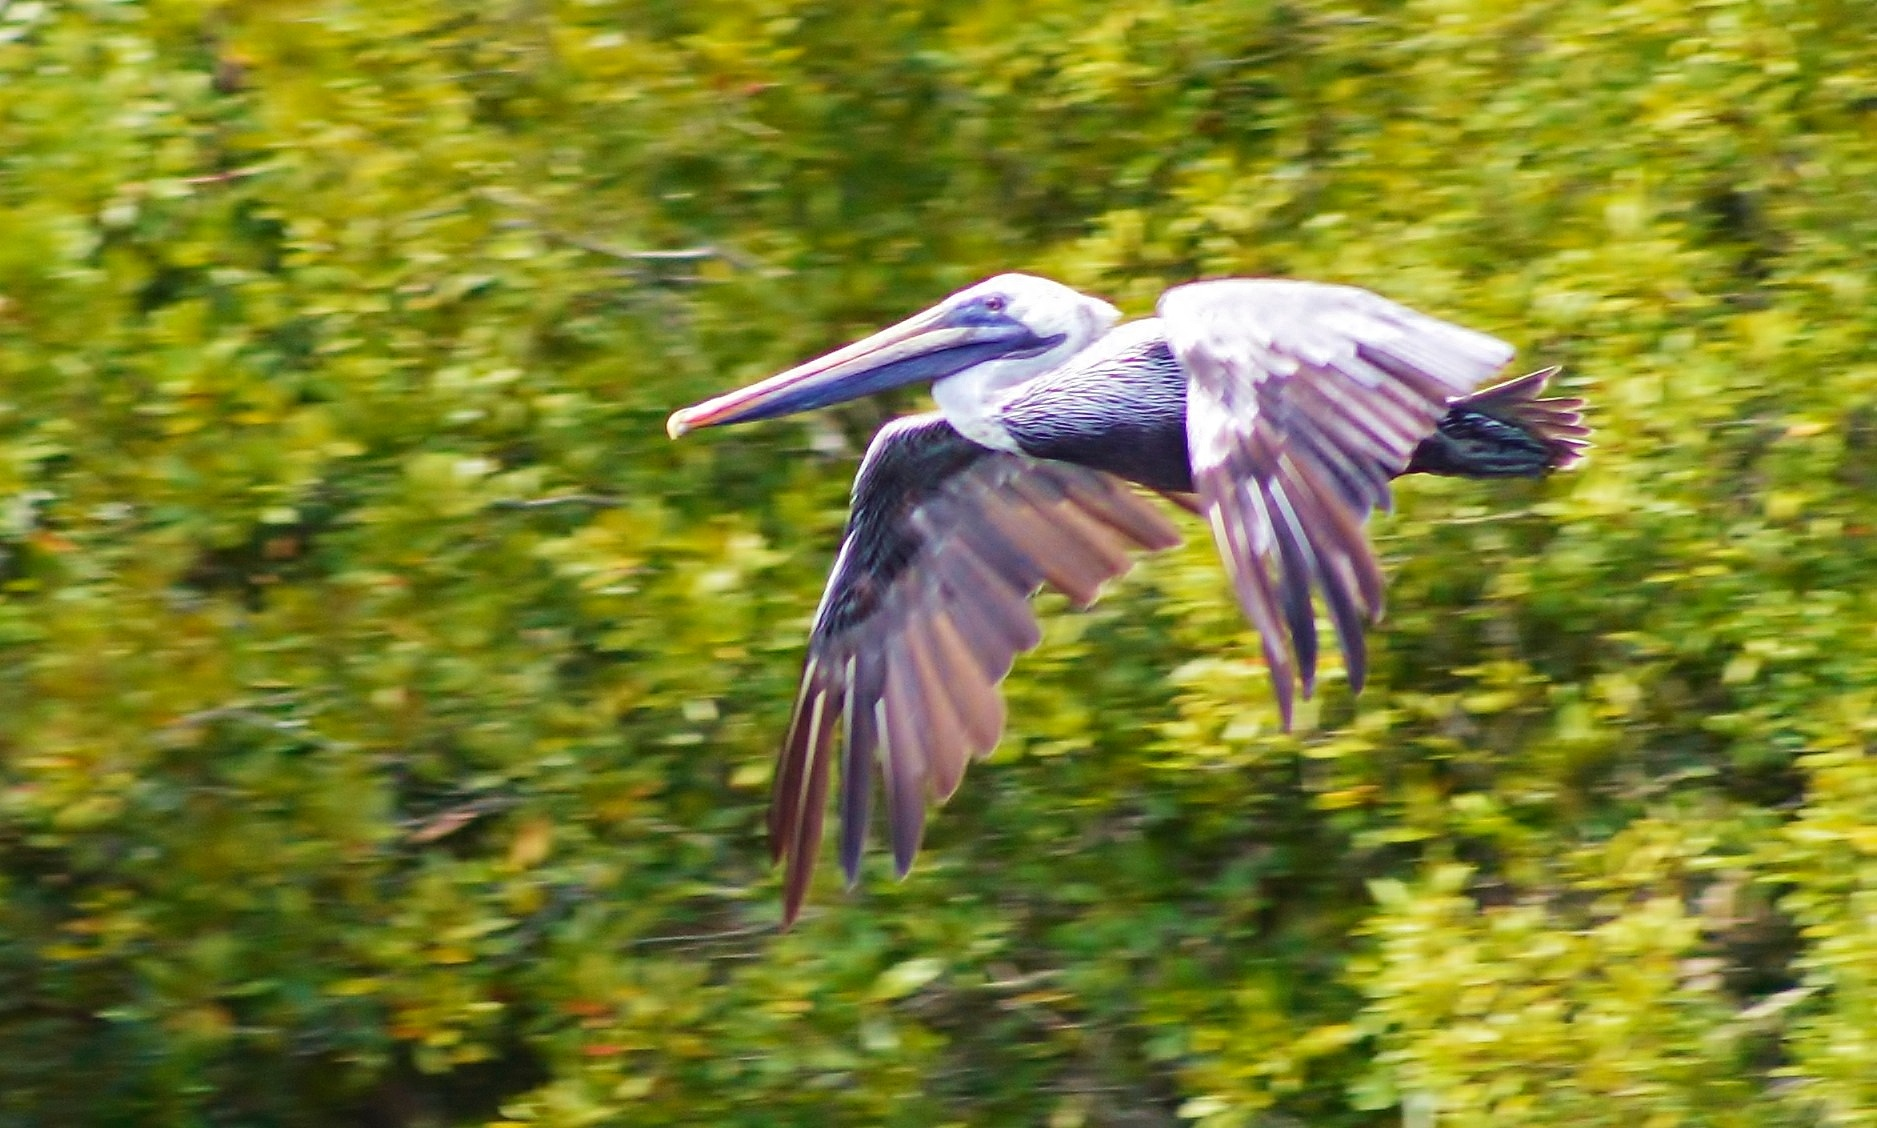 Speedy Brown Pelican by jamie.dorton